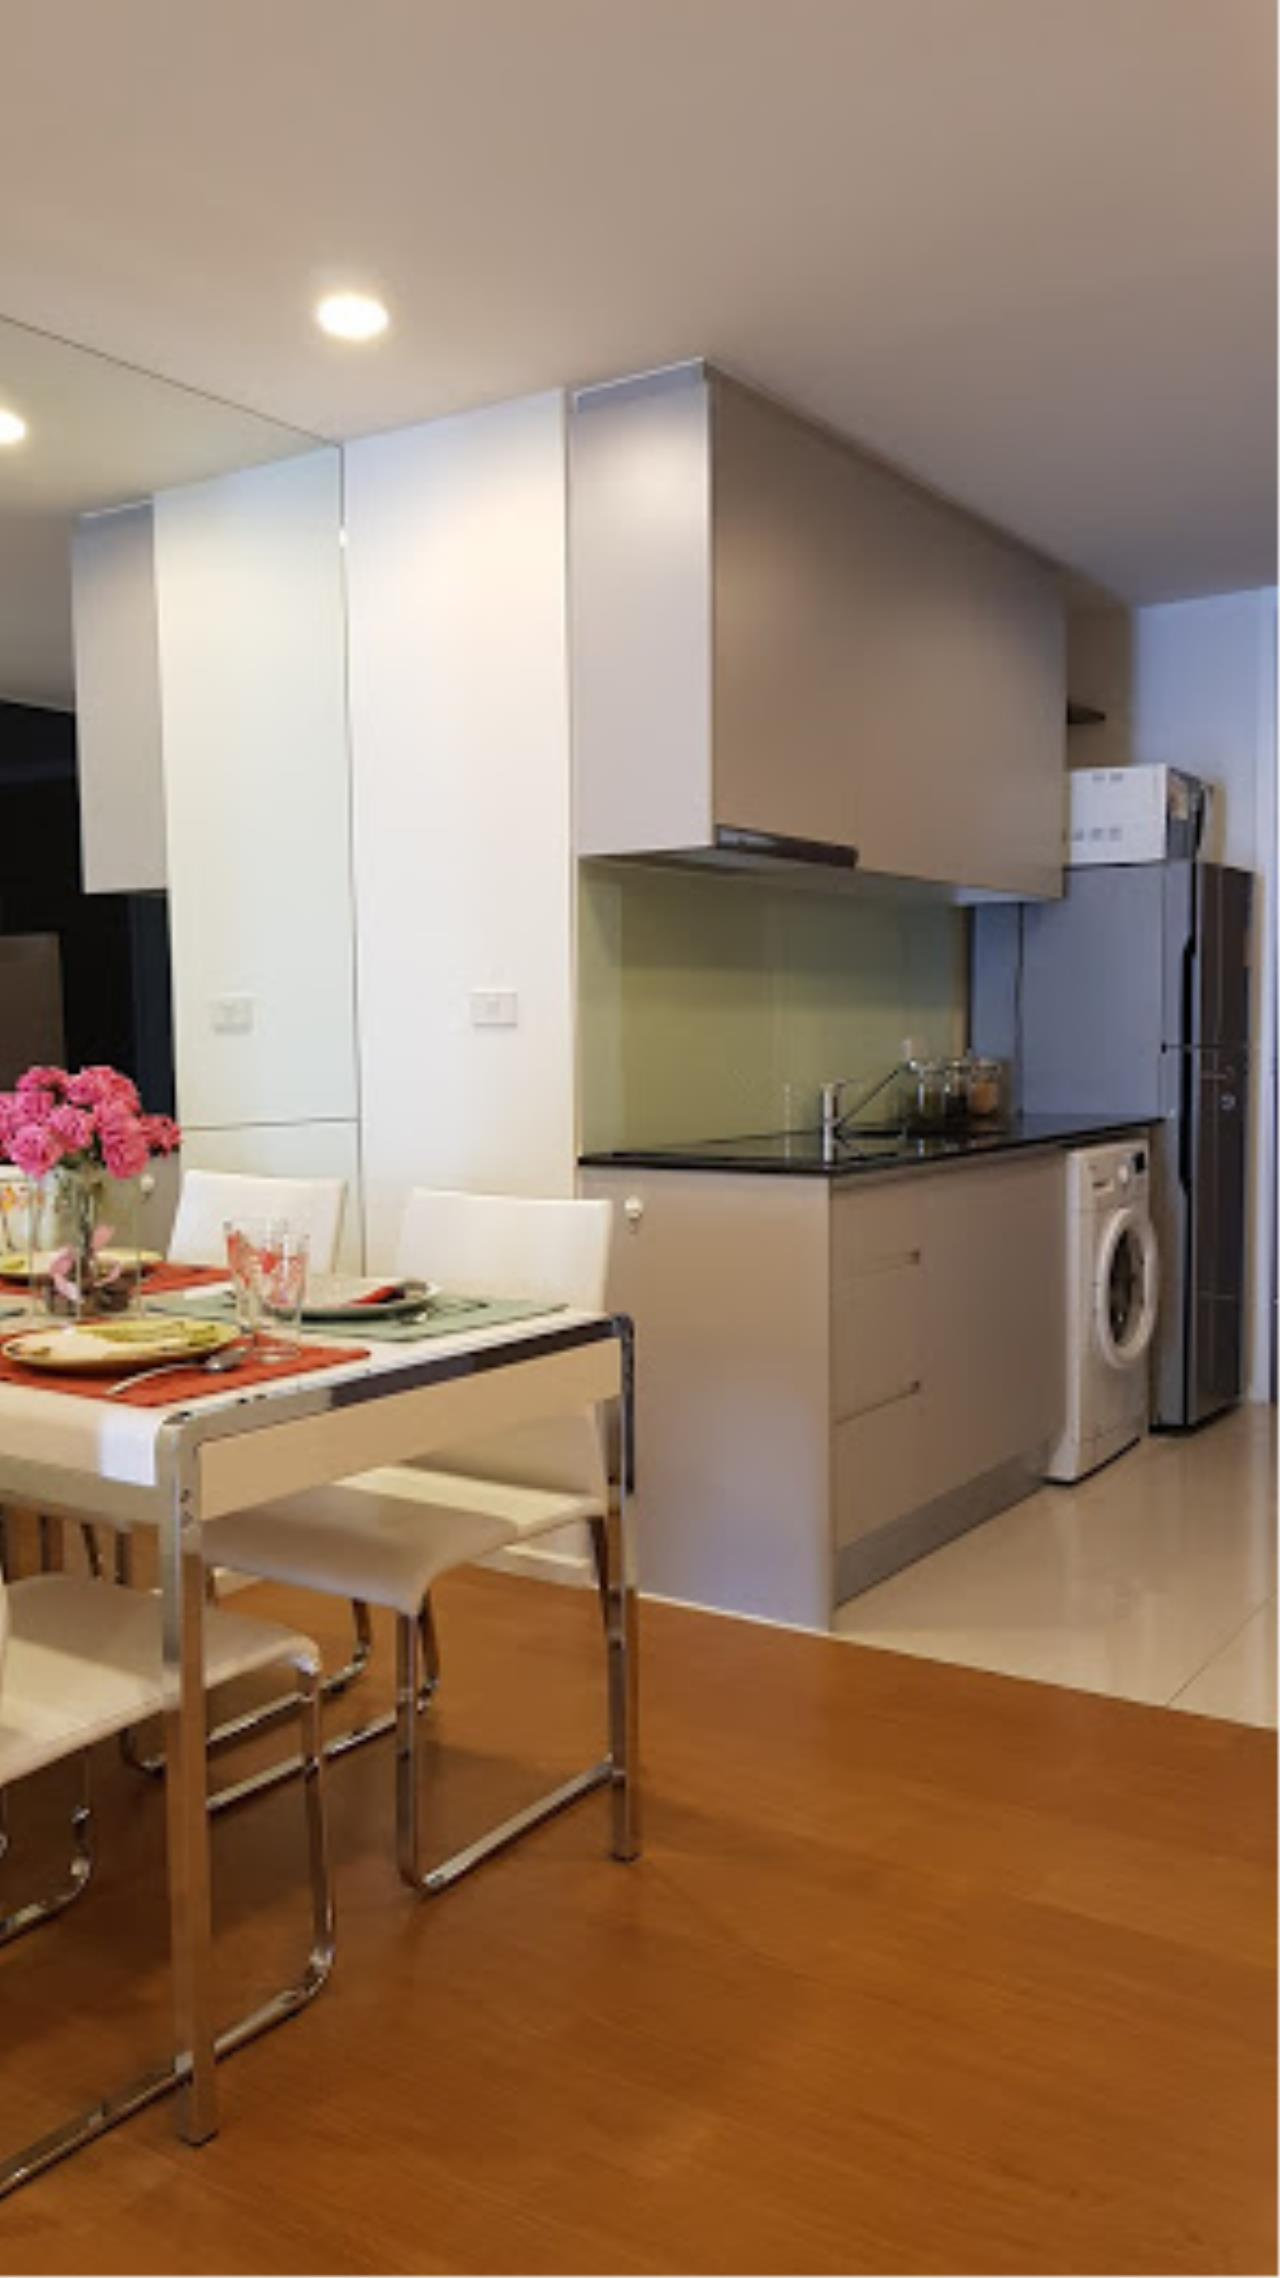 Quality Life Property Agency's S A L E  ! 15 Sukhumvit residence | 1 Bed 1 Bath | 59.29 Sq. M. 2